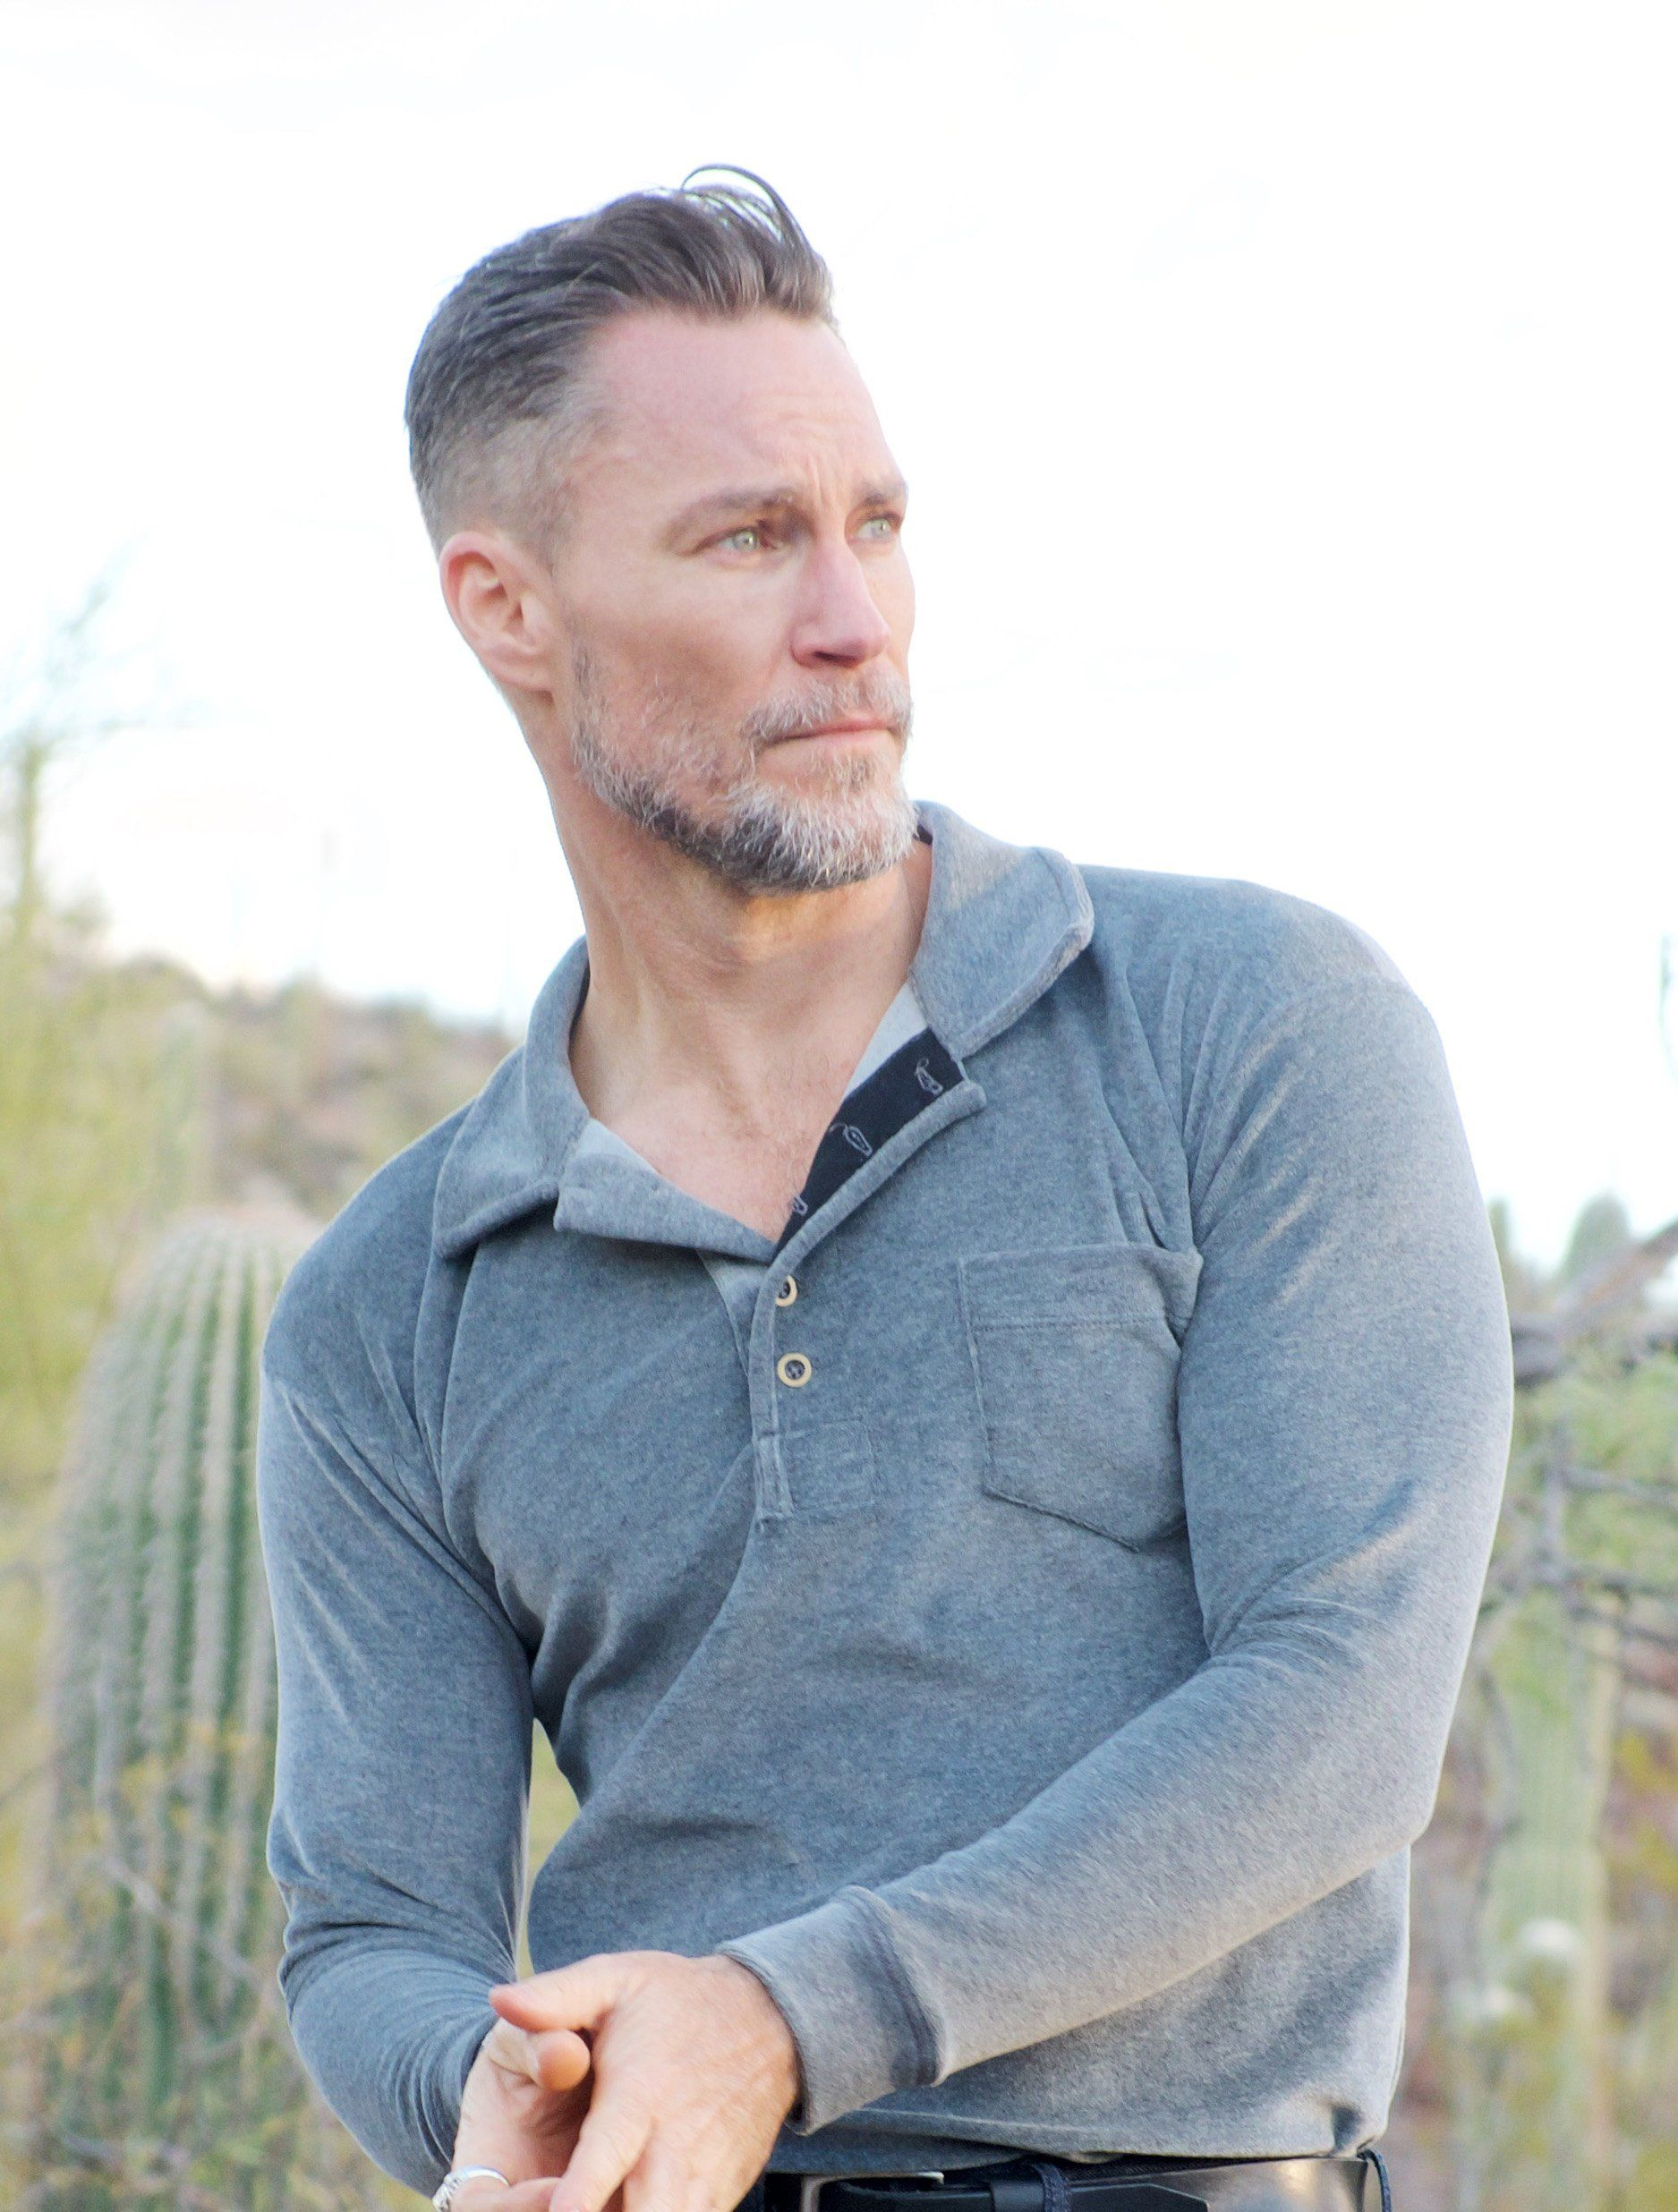 Mens haircuts tucson this classic mens silhouette is countered to fit and enhance the